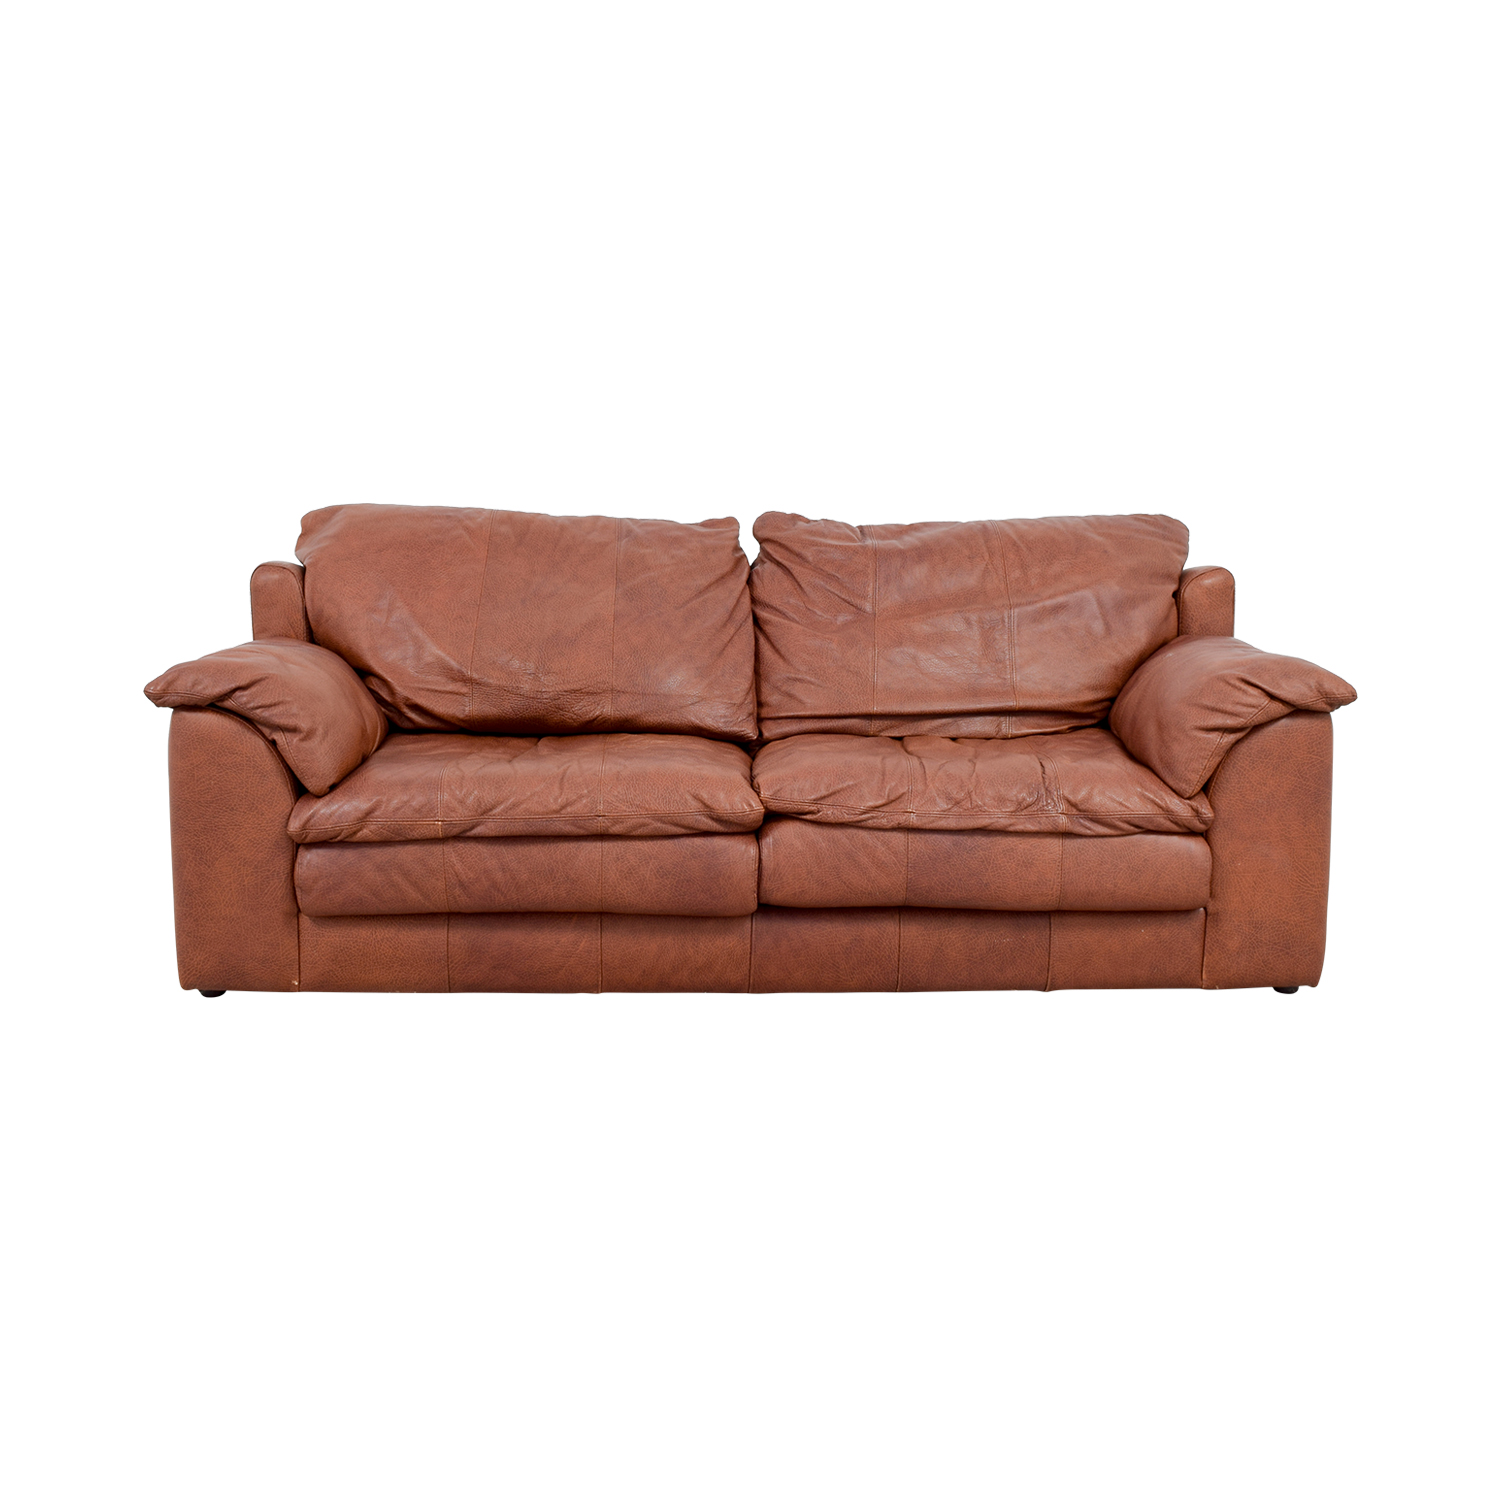 Rust Two-Cushion Leather Couch with Pillowed Arms / Sofas